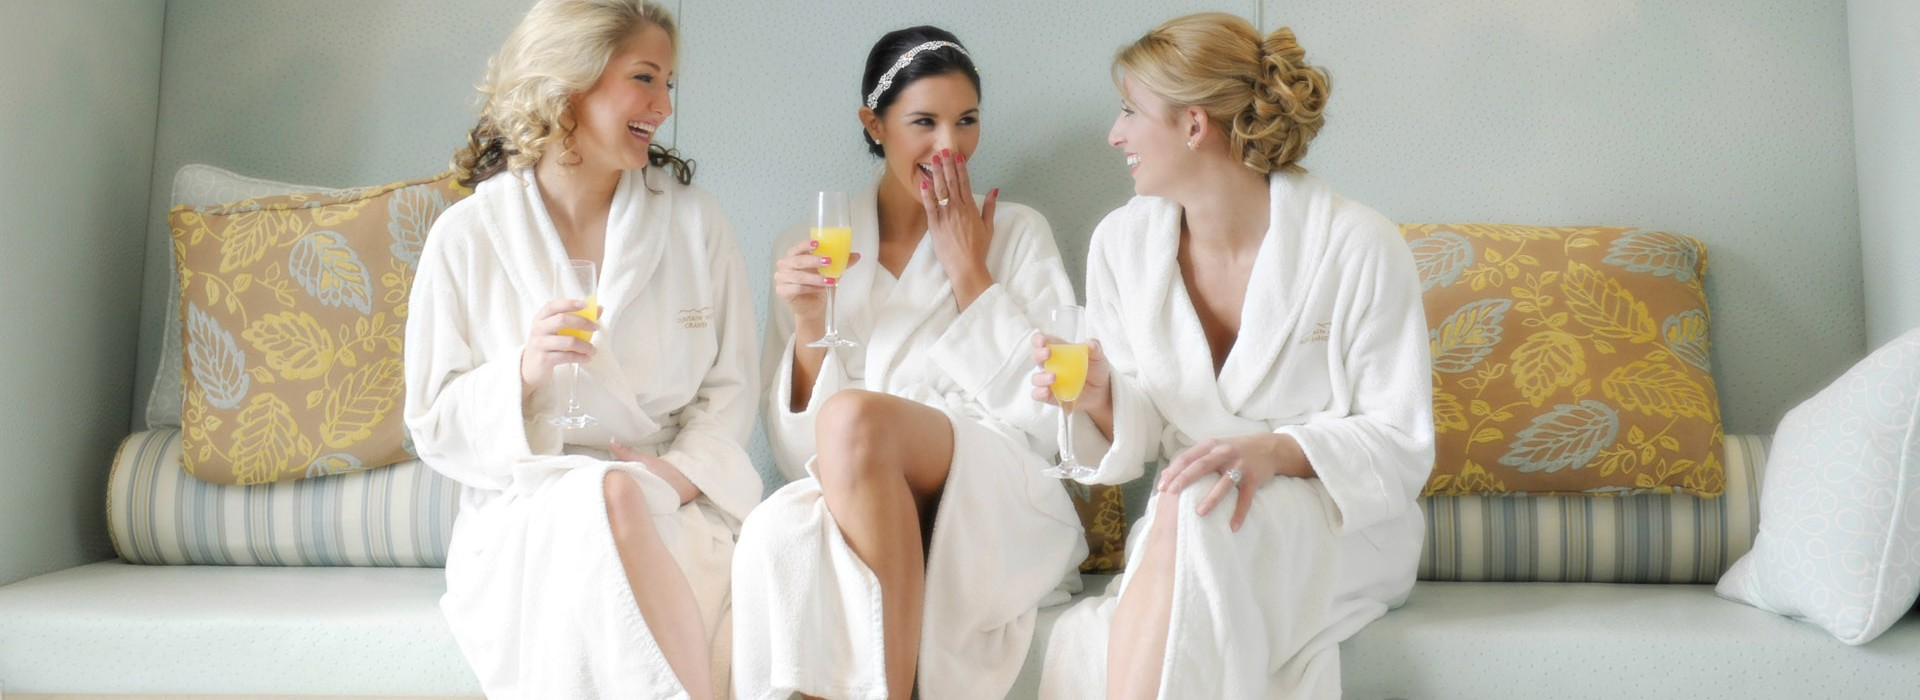 spa_party_women_hd-1920x700